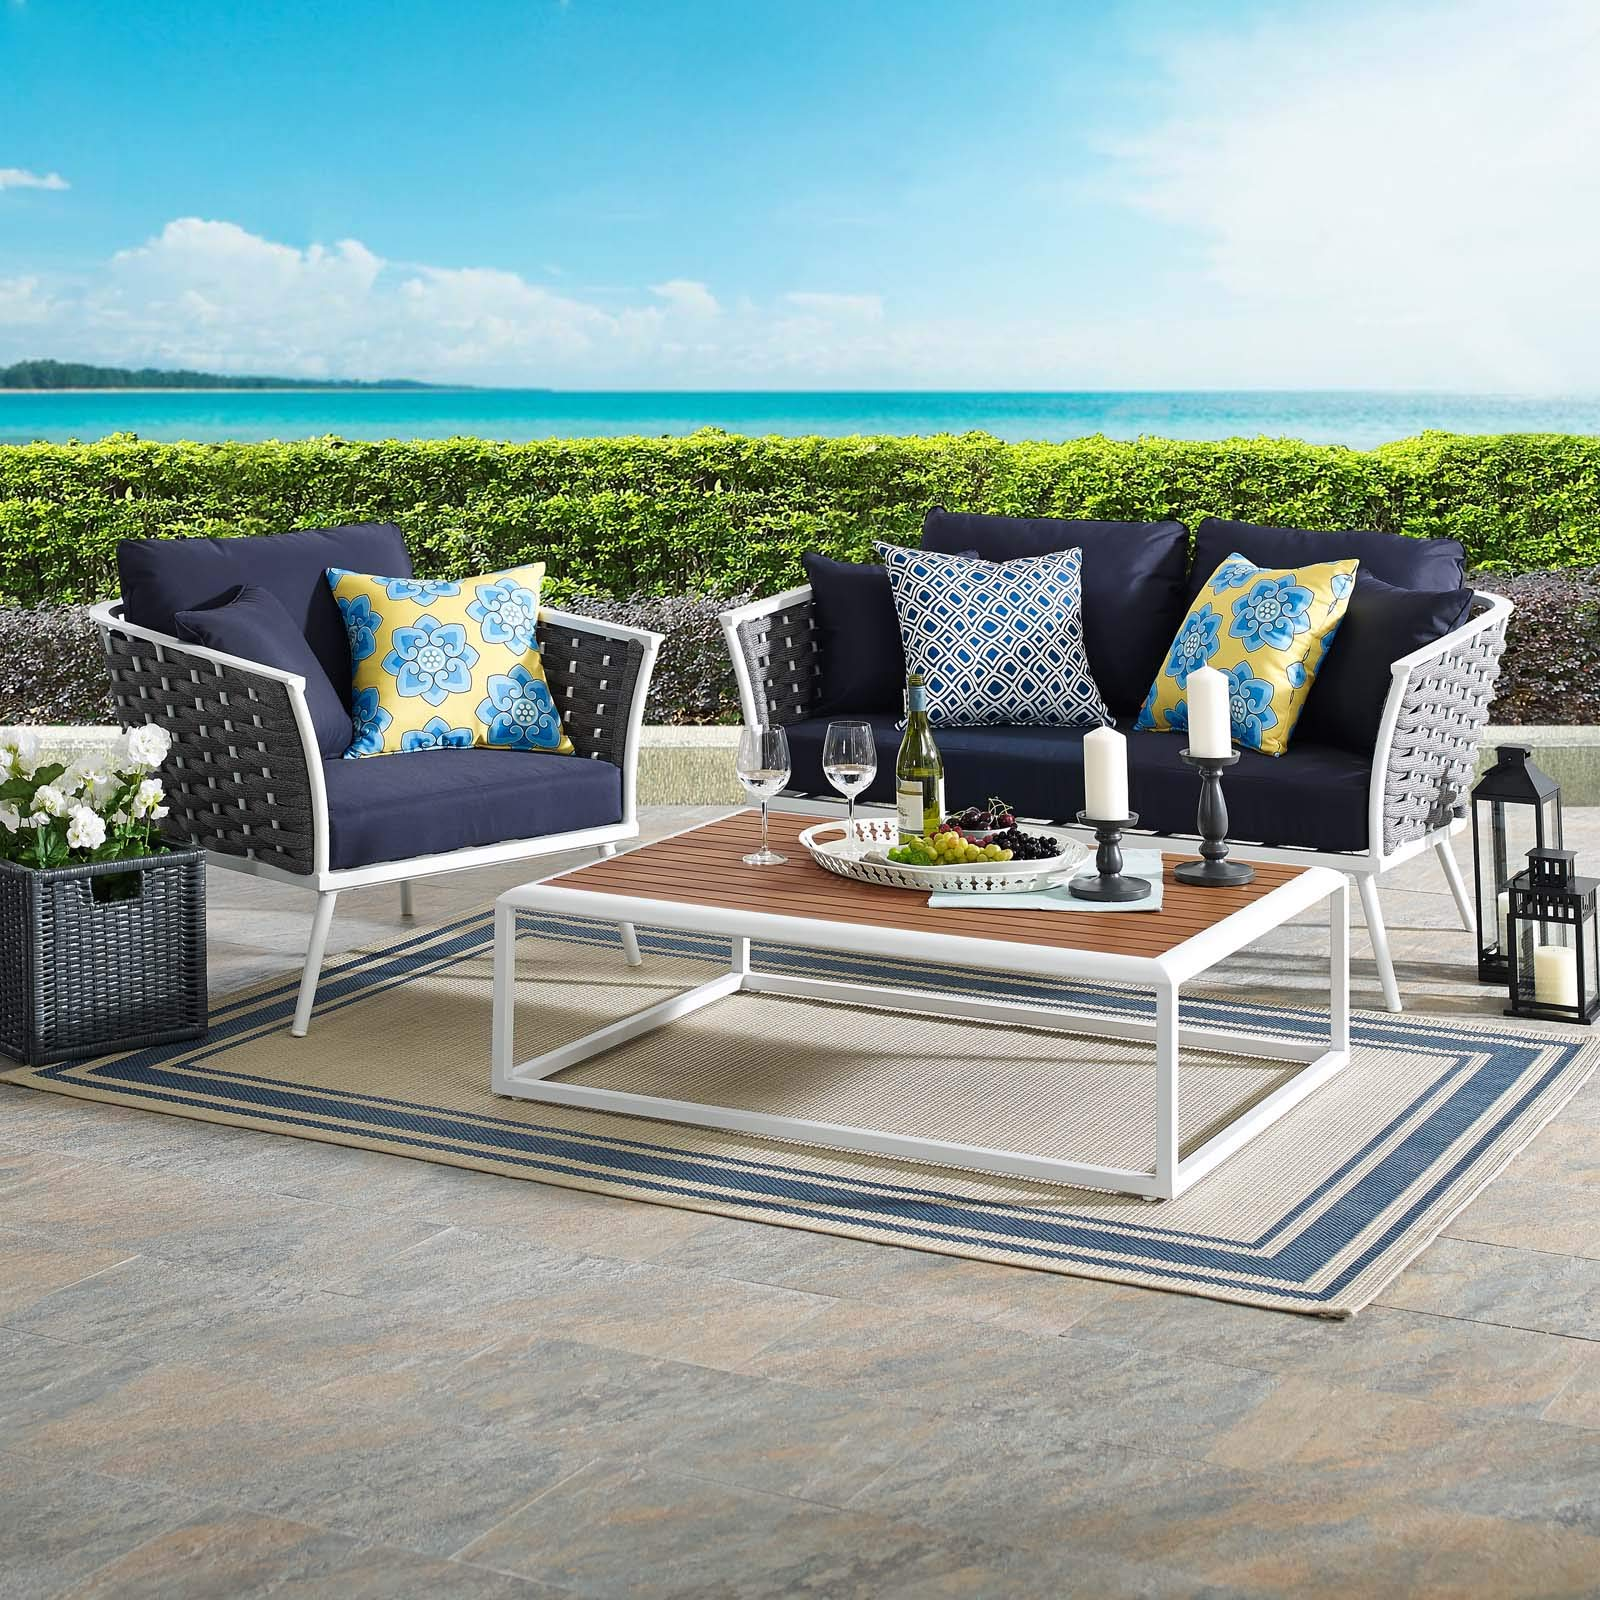 Modway Stance 3-Piece Outdoor Patio Woven Rope Aluminum Loveseat, Armchair, and Coffee Table Furniture Set in White Navy